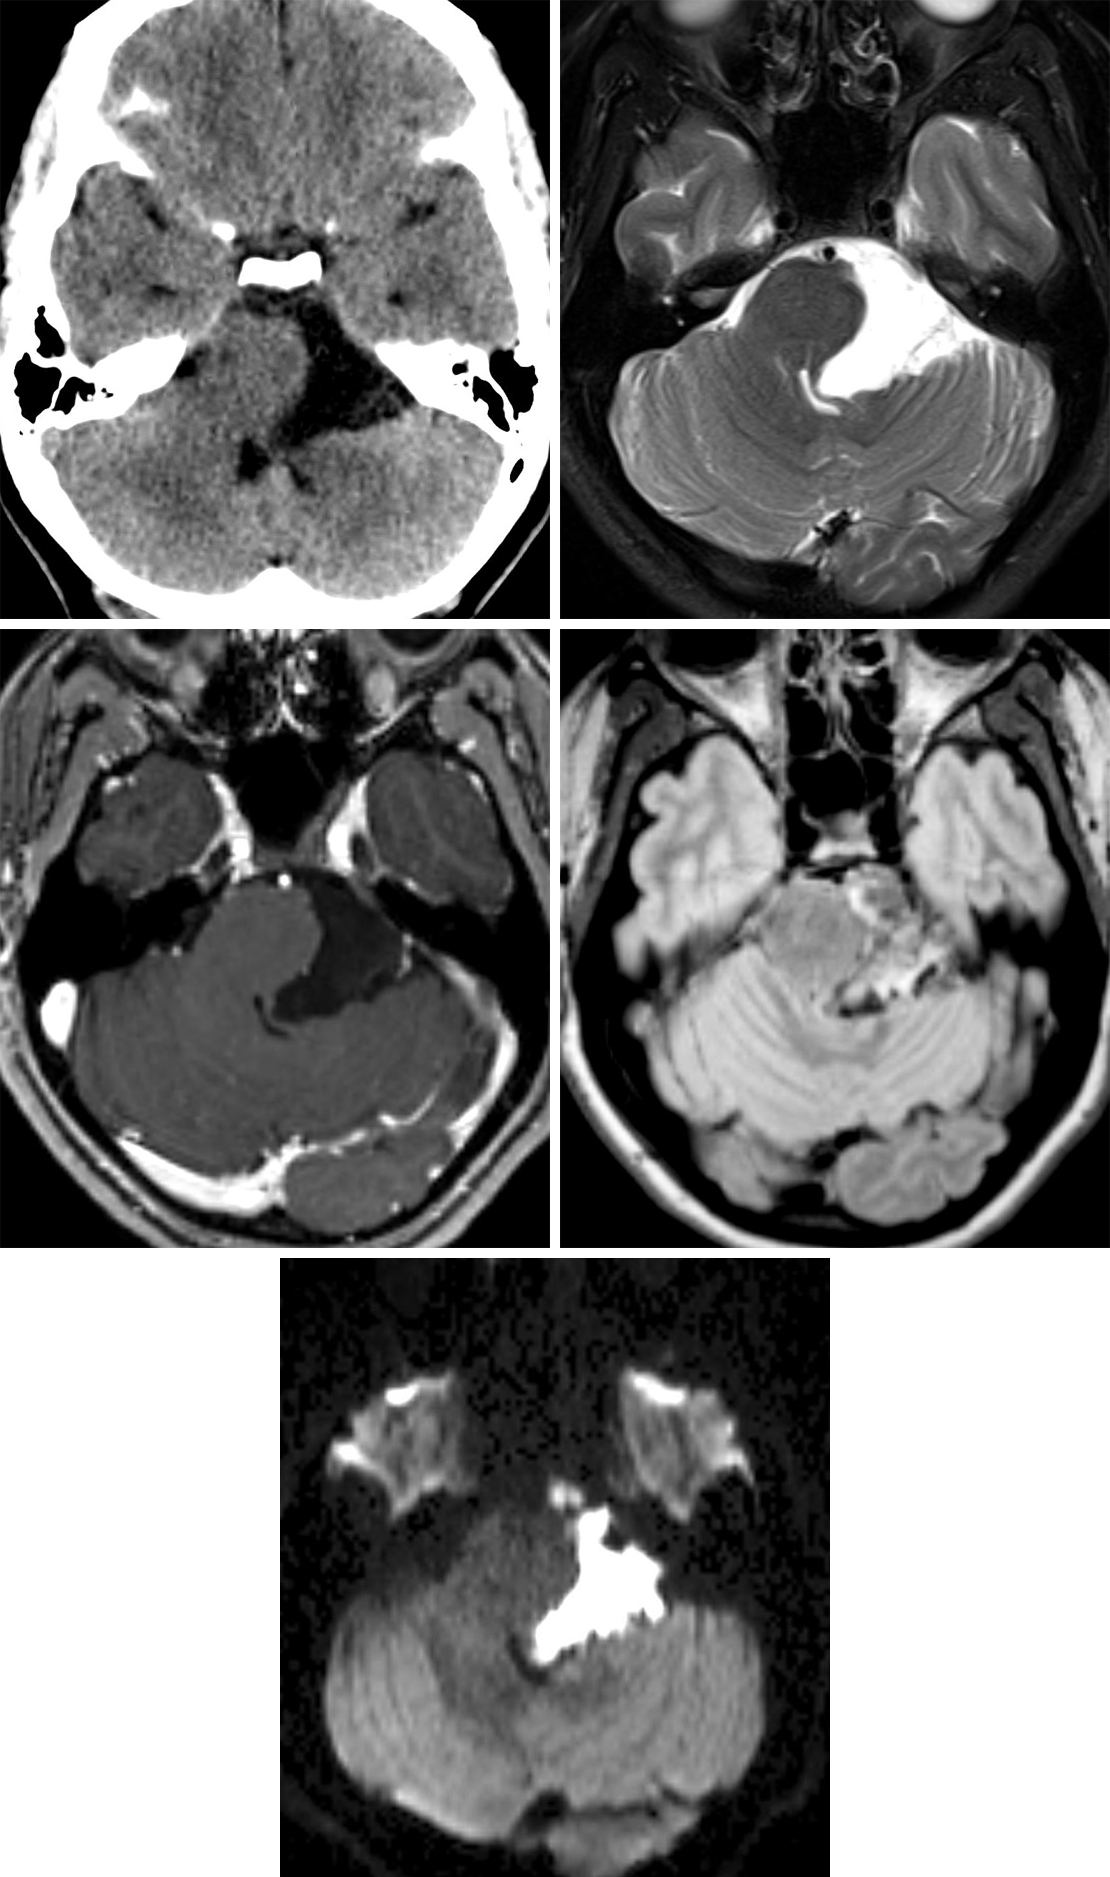 Figure 1: (Top Left) A low-density lesion in the left cerebellopontine angle on CT could represent a number of lesions, including arachnoid cyst or epidermoid cyst. T2WI (top right) and T1WI postcontrast (middle left) give little additional diagnostic information, with the lesion still matching CSF signal. (Middle Right) FLAIR imaging, as in this case, often demonstrates an epidermoid cyst to have different signal than CSF. (Bottom) Diffusion-weighted imaging is the most helpful sequence with these lesions, demonstrating often dramatic hyperintensity.